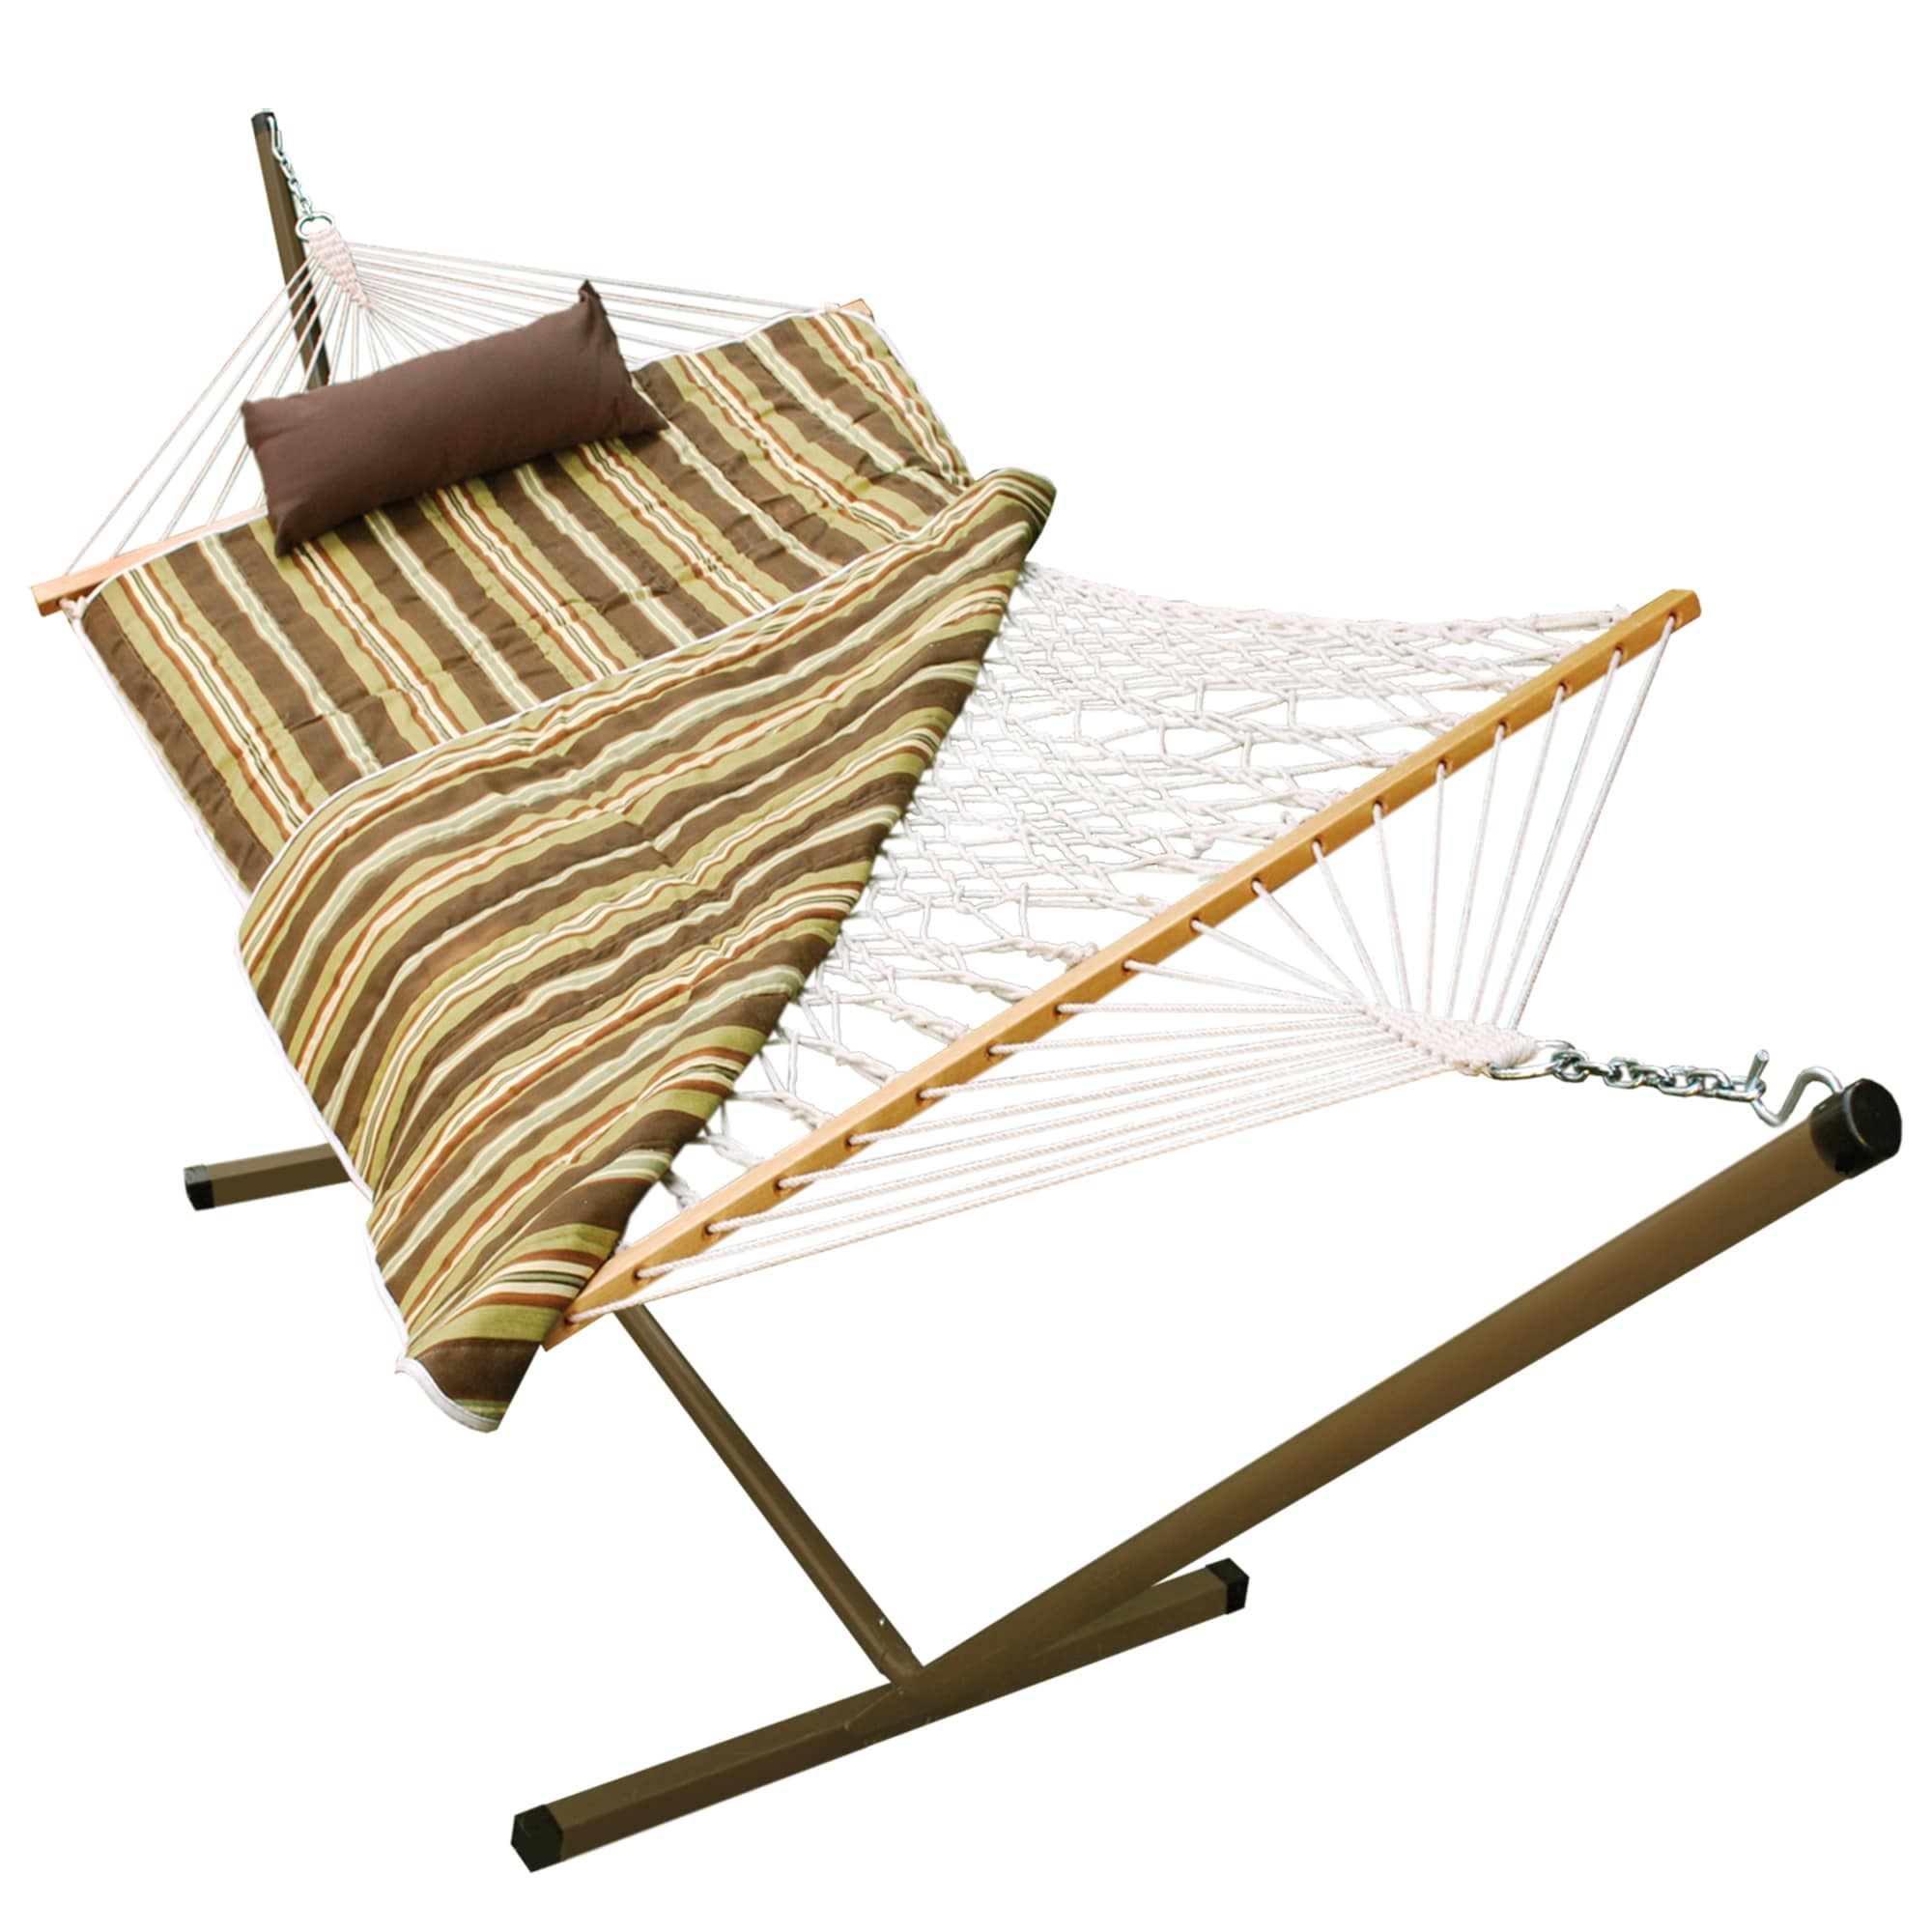 stand hammocks wooden deluxe arc hatteras wood alone deluxecombo roman xx cypress hammock with rope